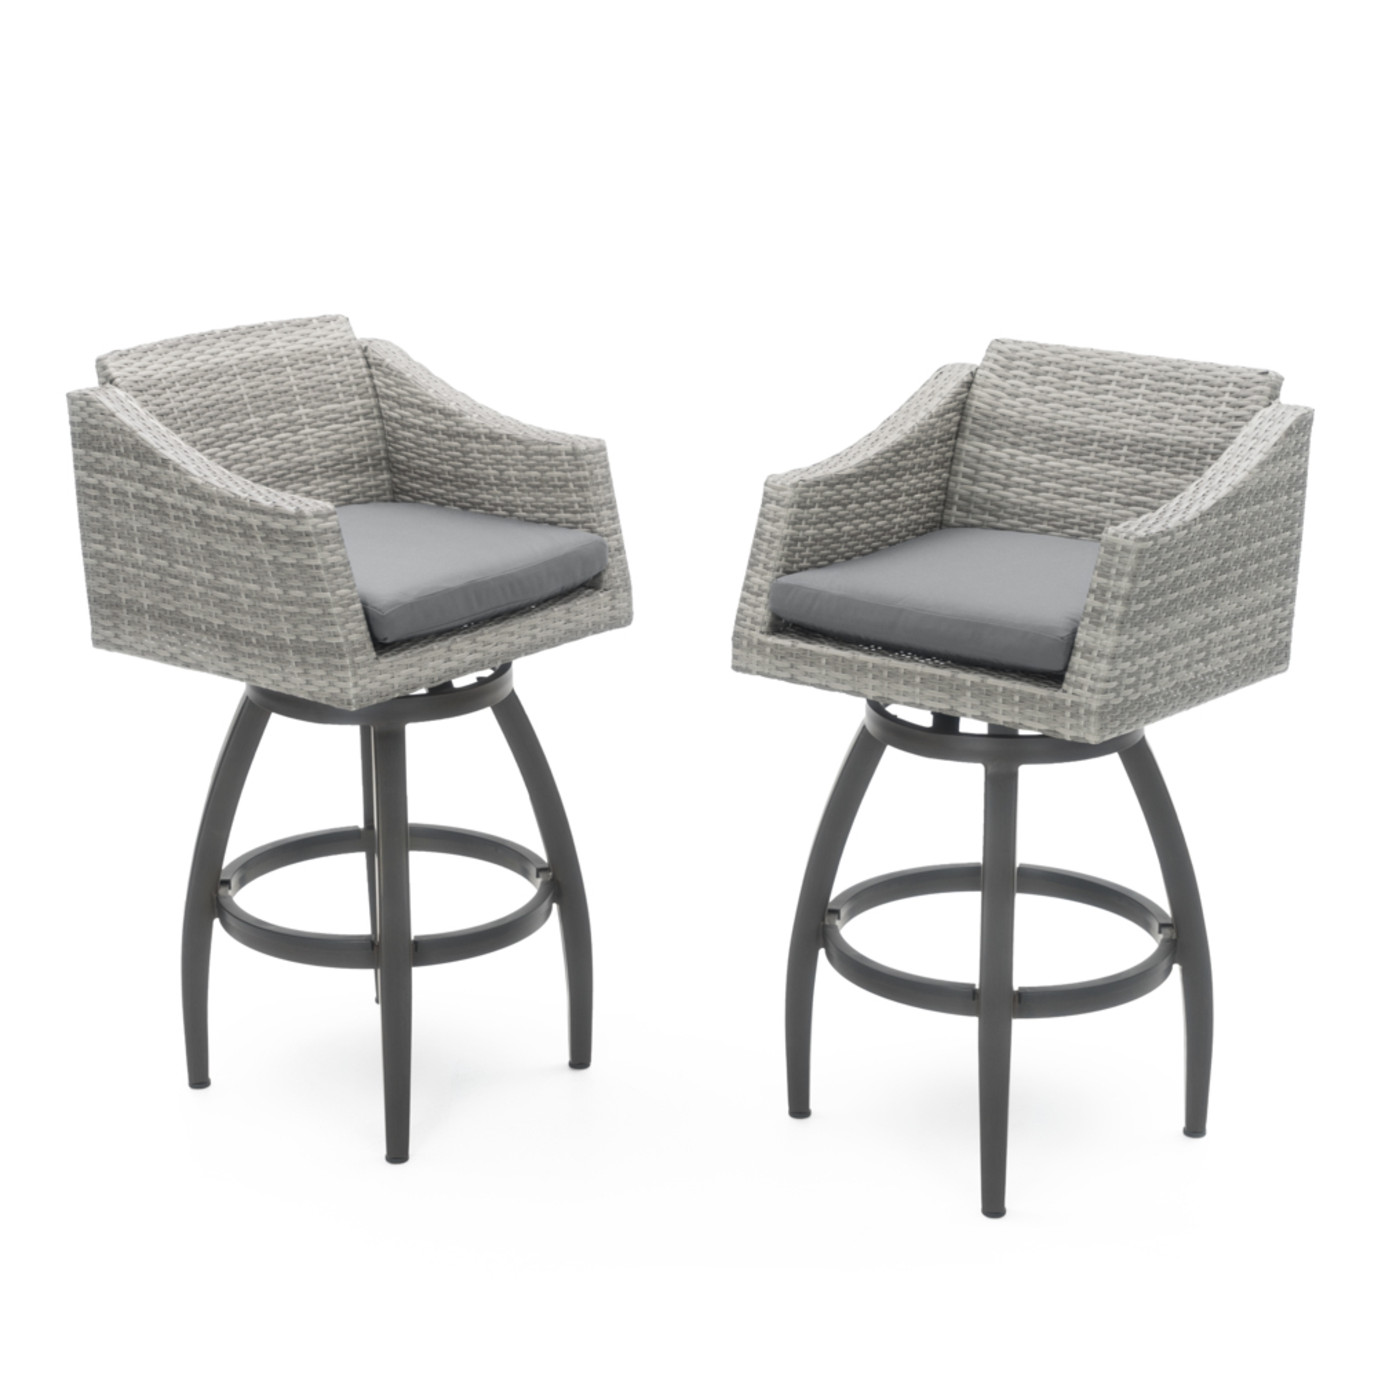 Cannes™ Swivel Barstool 2pk - Charcoal Gray